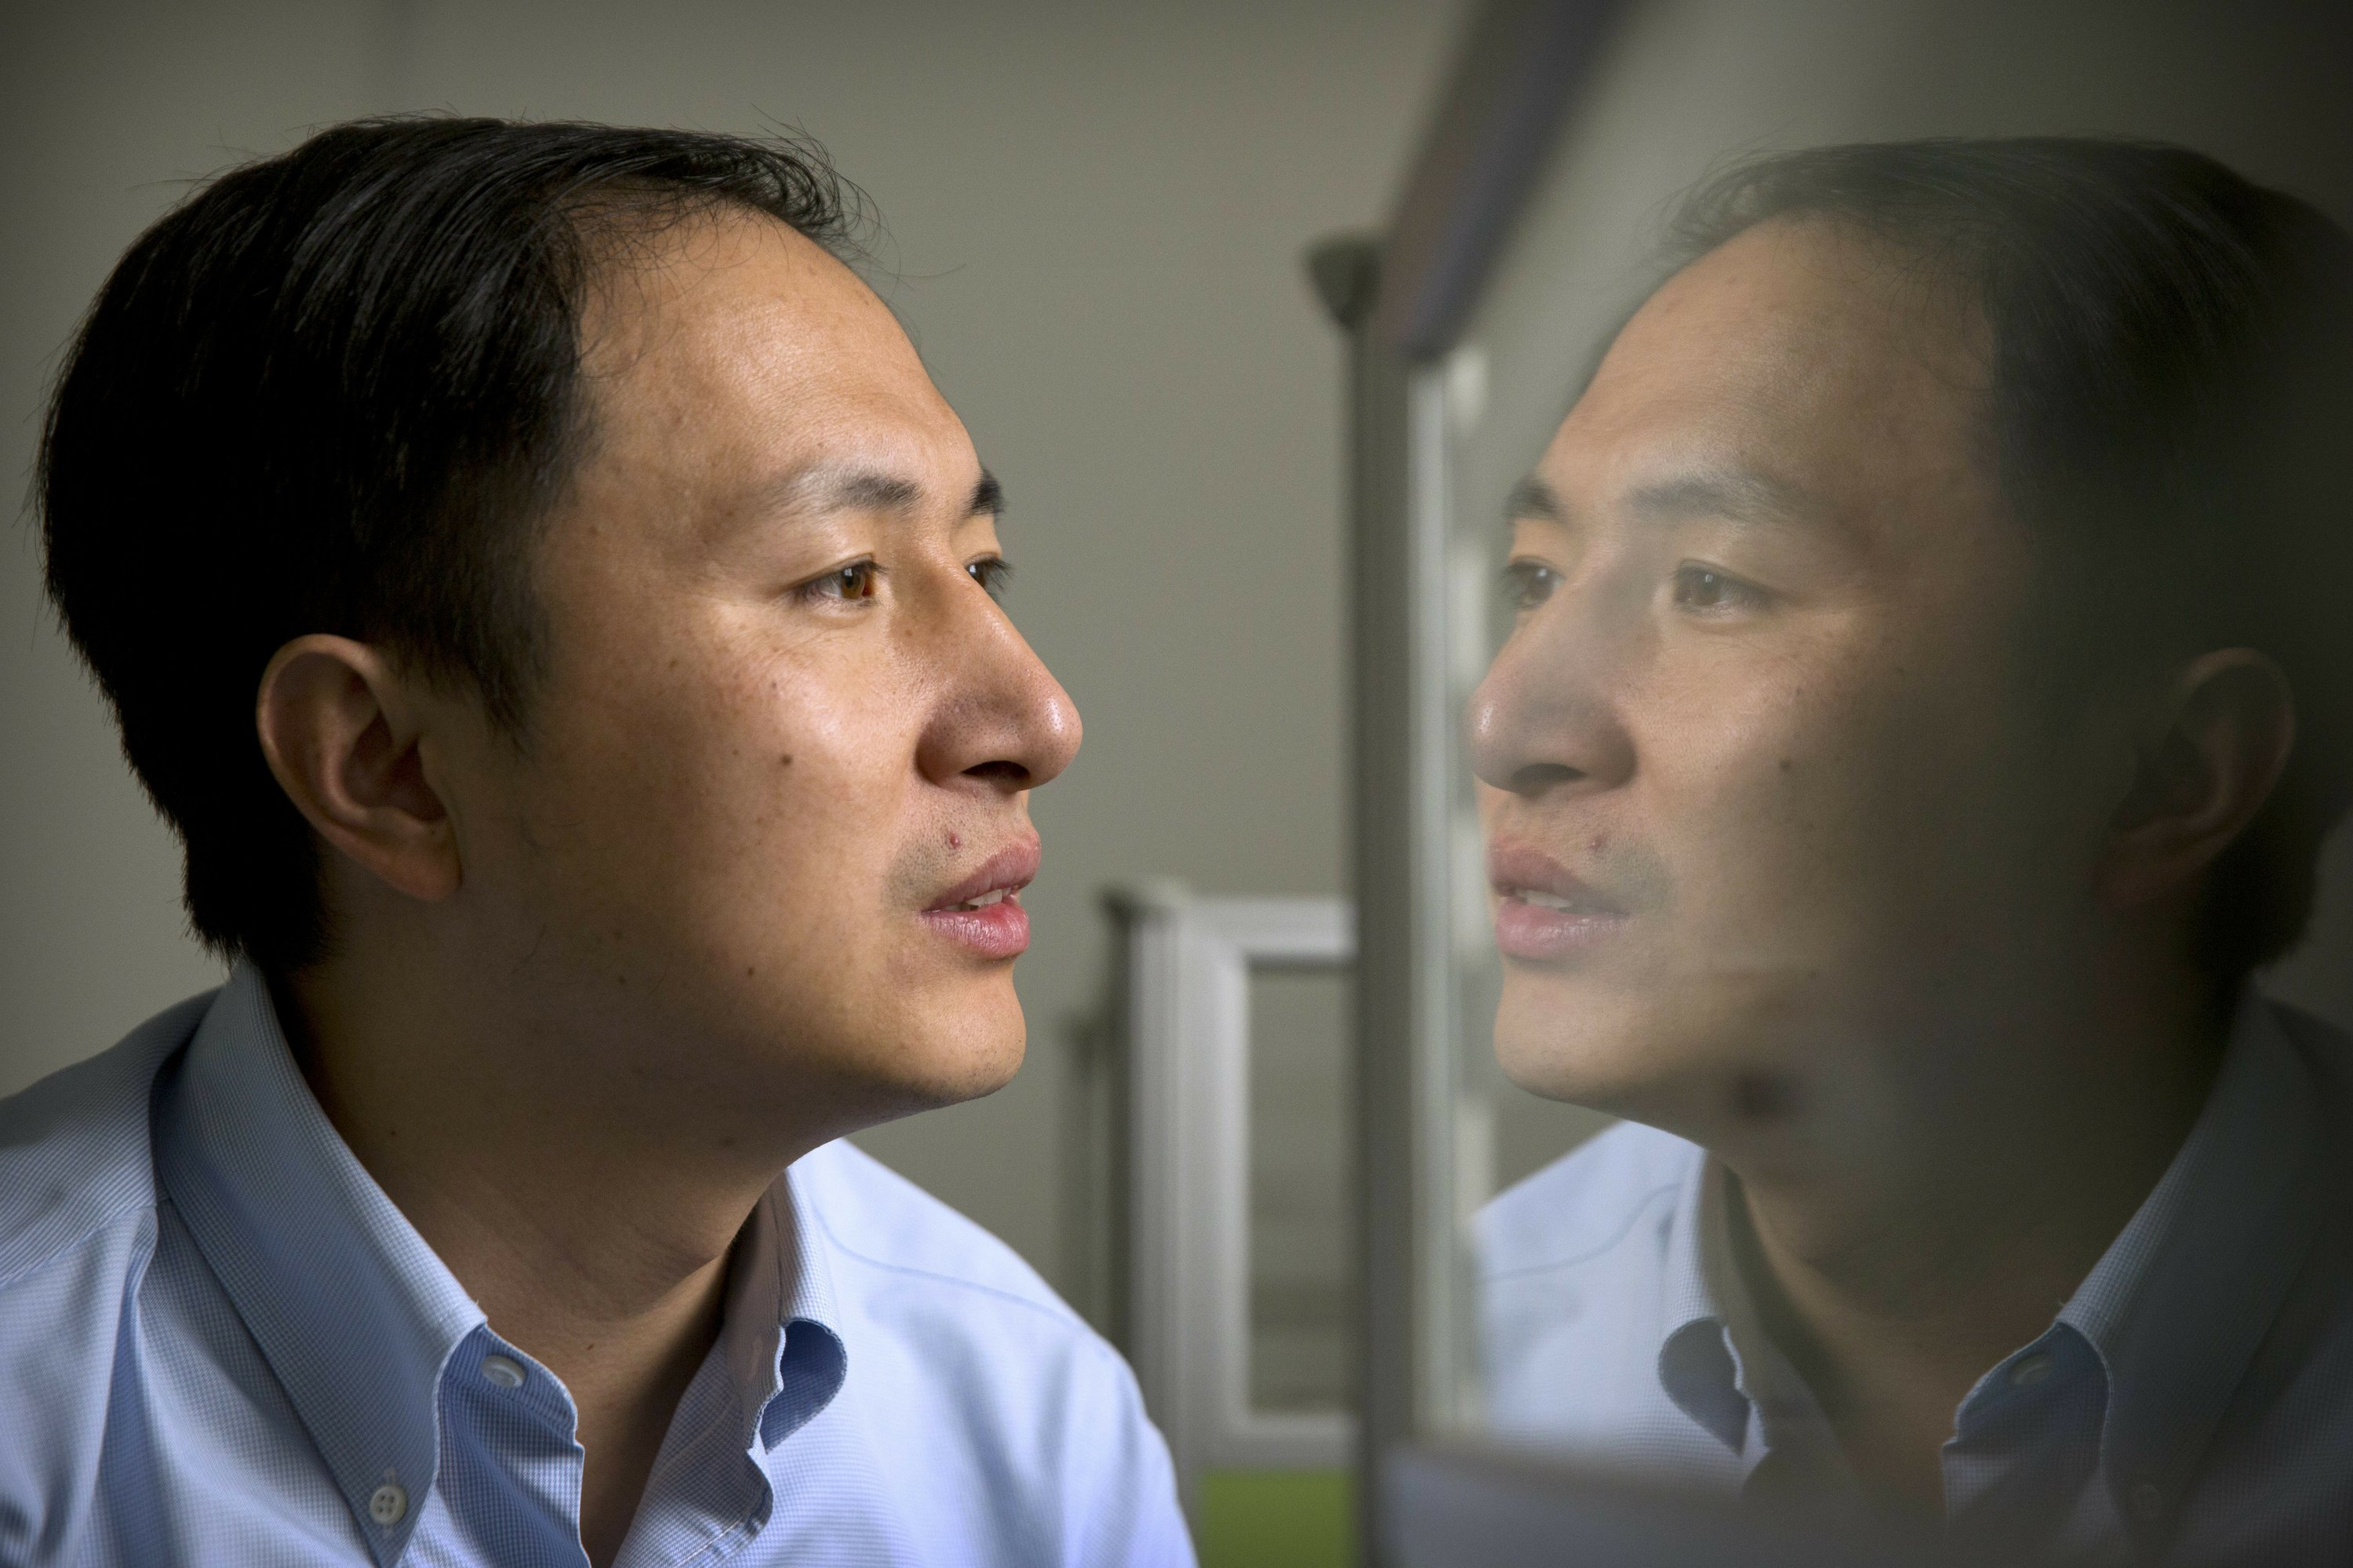 China seems to confirm scientist's gene-edited babies claim